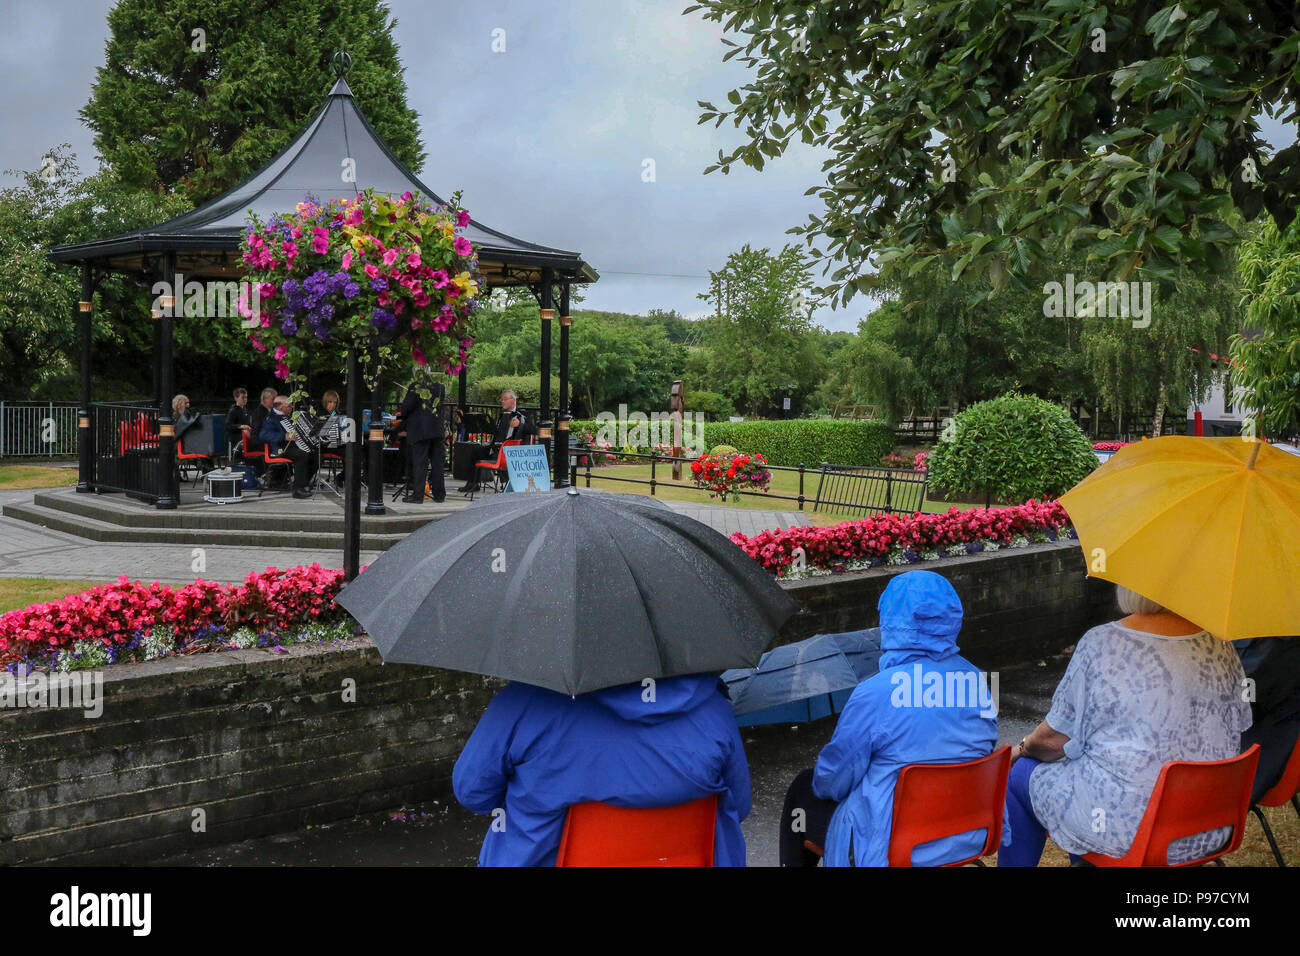 Scarva, County Down. 15 July 2018. UK weather - the prolonged spell of exceptionally dry weather came to an end today. Persistent rain was however welcome even if it meant a Sunday afternoon band concert under an umbrella. Credit: David Hunter Alamy Live News. - Stock Image